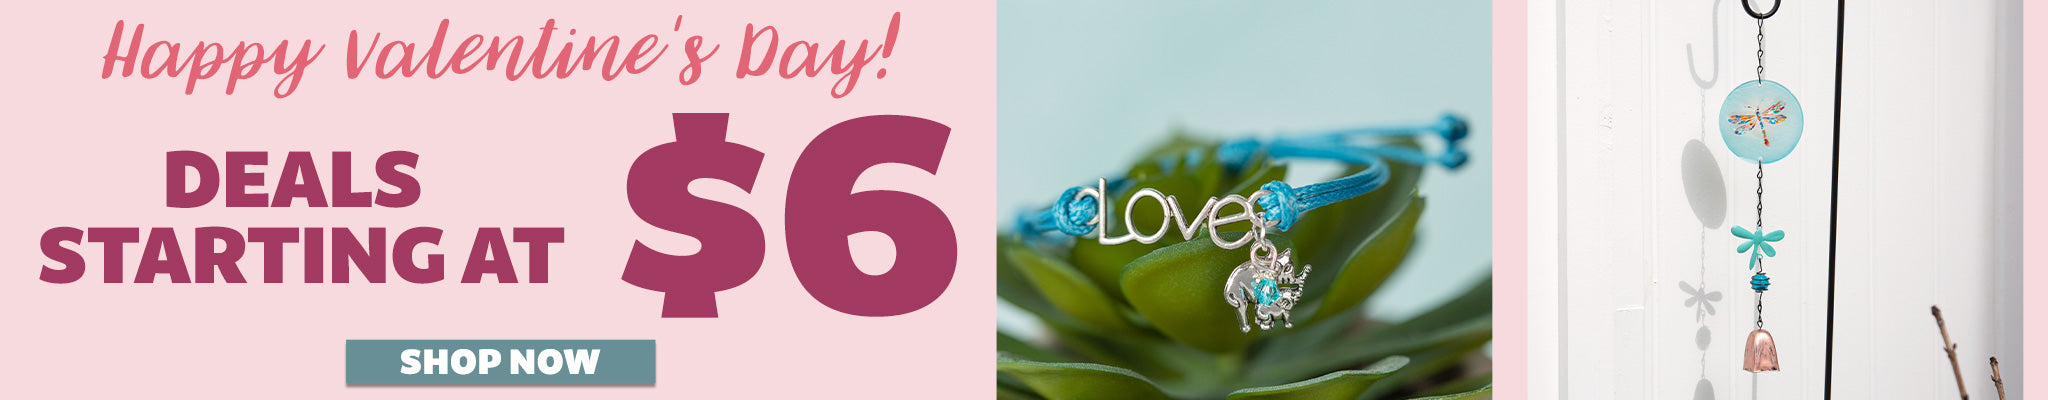 Happy Valentine's Day! | Deals Starting at $6 | Shop Now